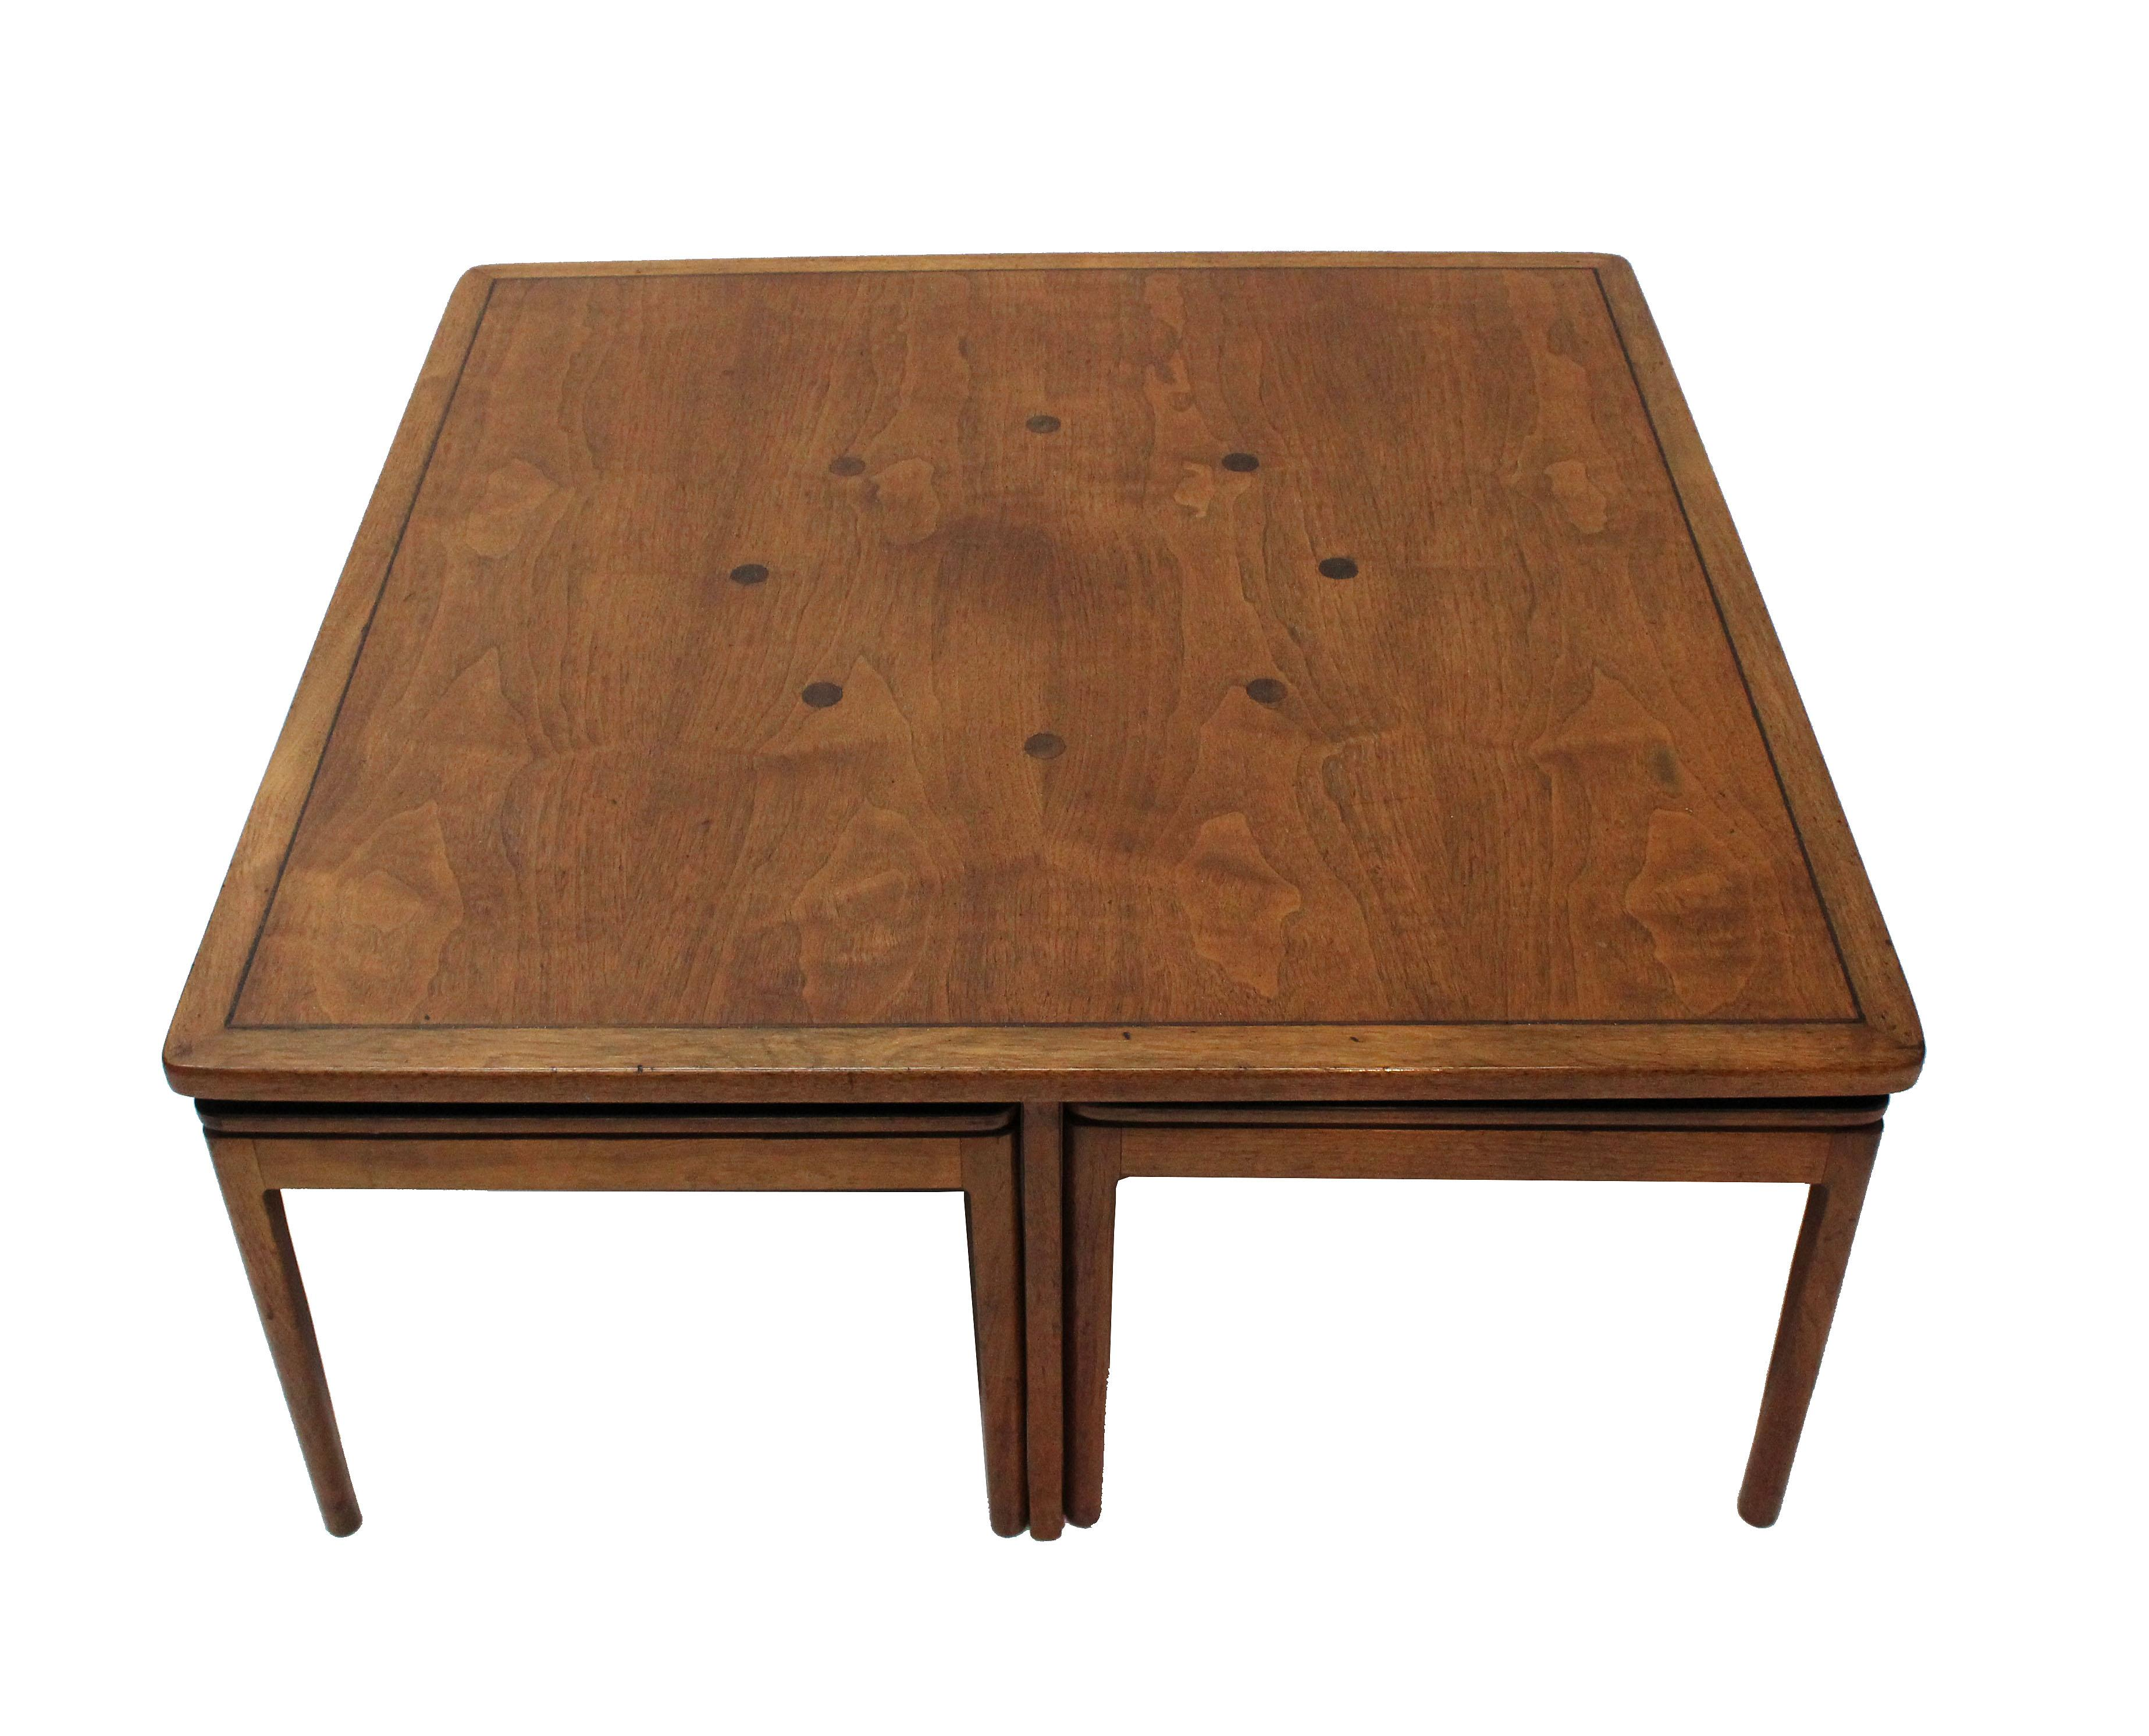 Kipp Stewart Drexel Declaration Coffee Table/Cocktail Table U0026 4 Ottomans    Image 2 Of